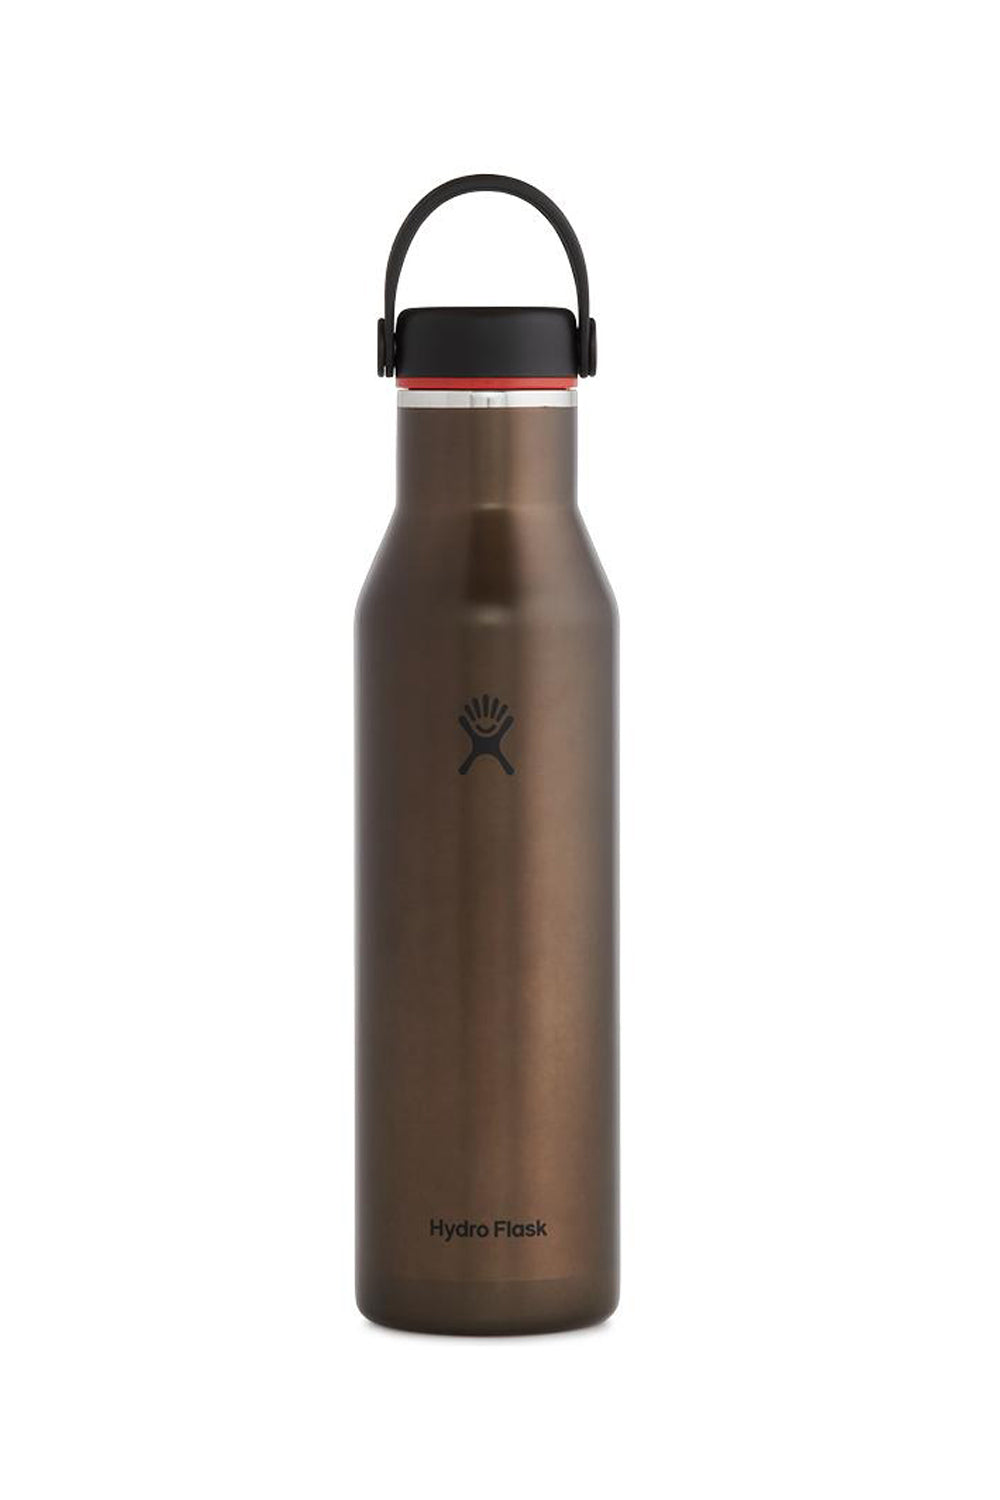 Hydro Flask Trail 21oz Lightweight Drink Bottle